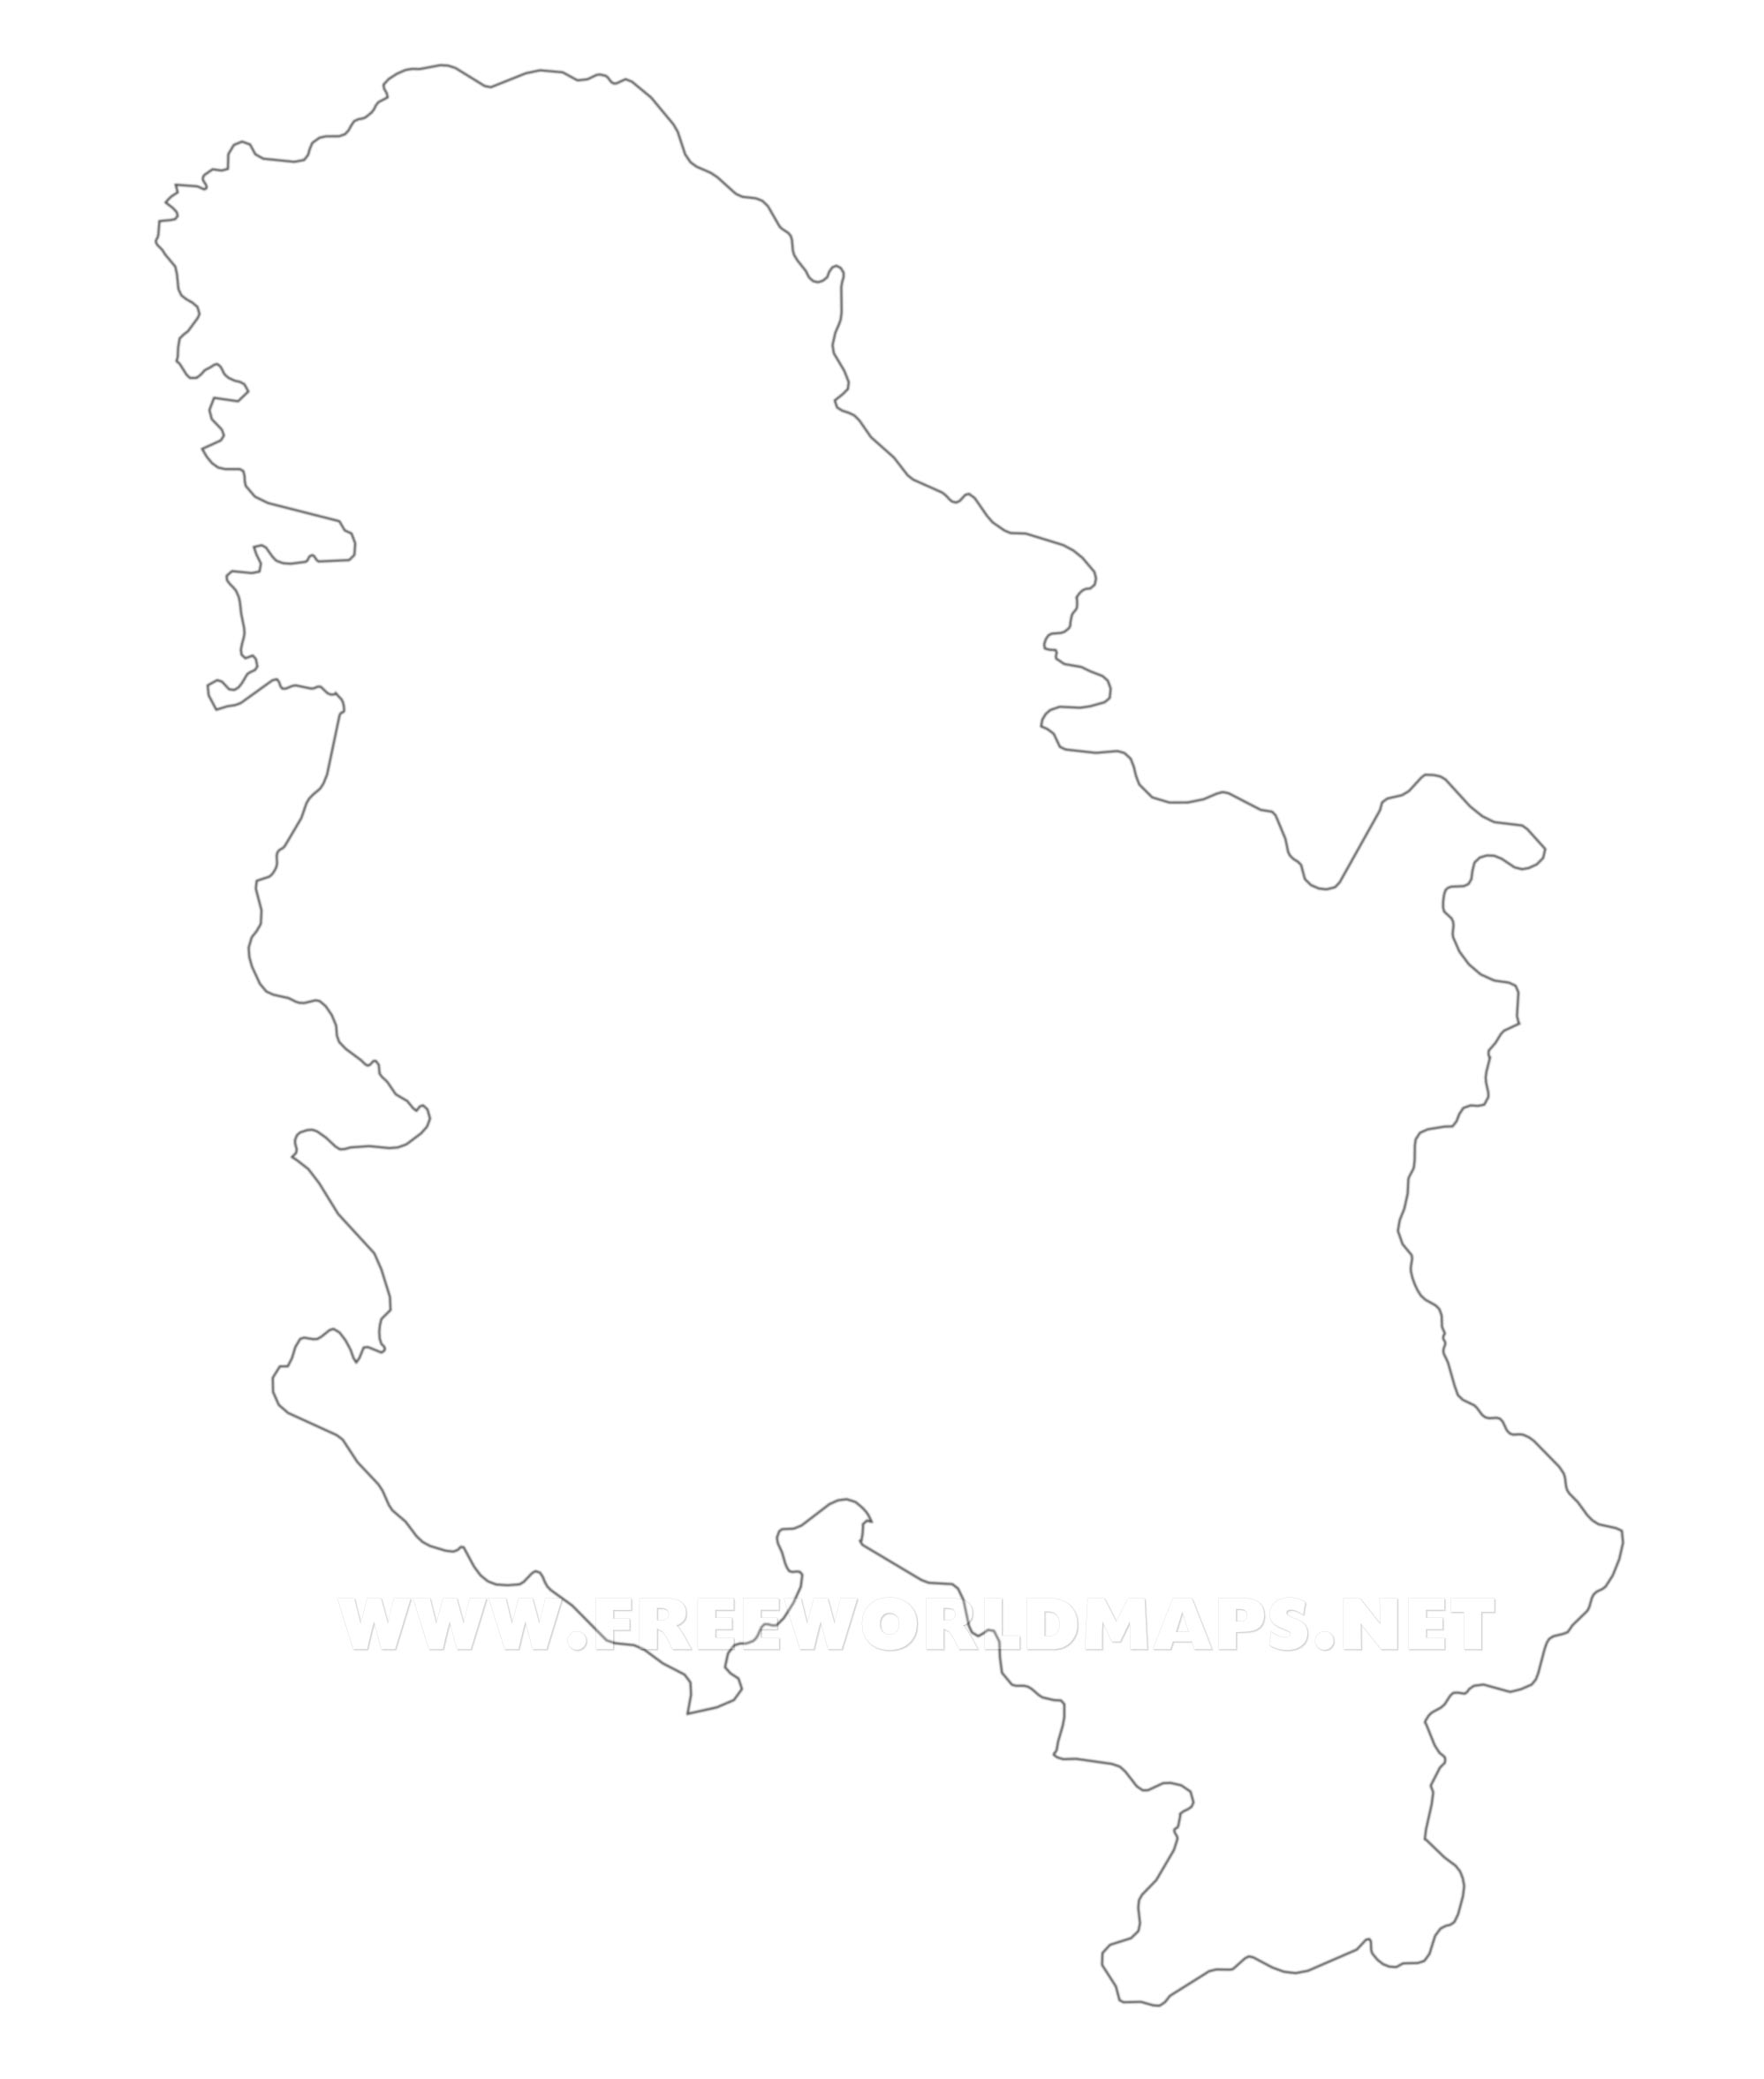 Serbia Political Map - Map of serbia